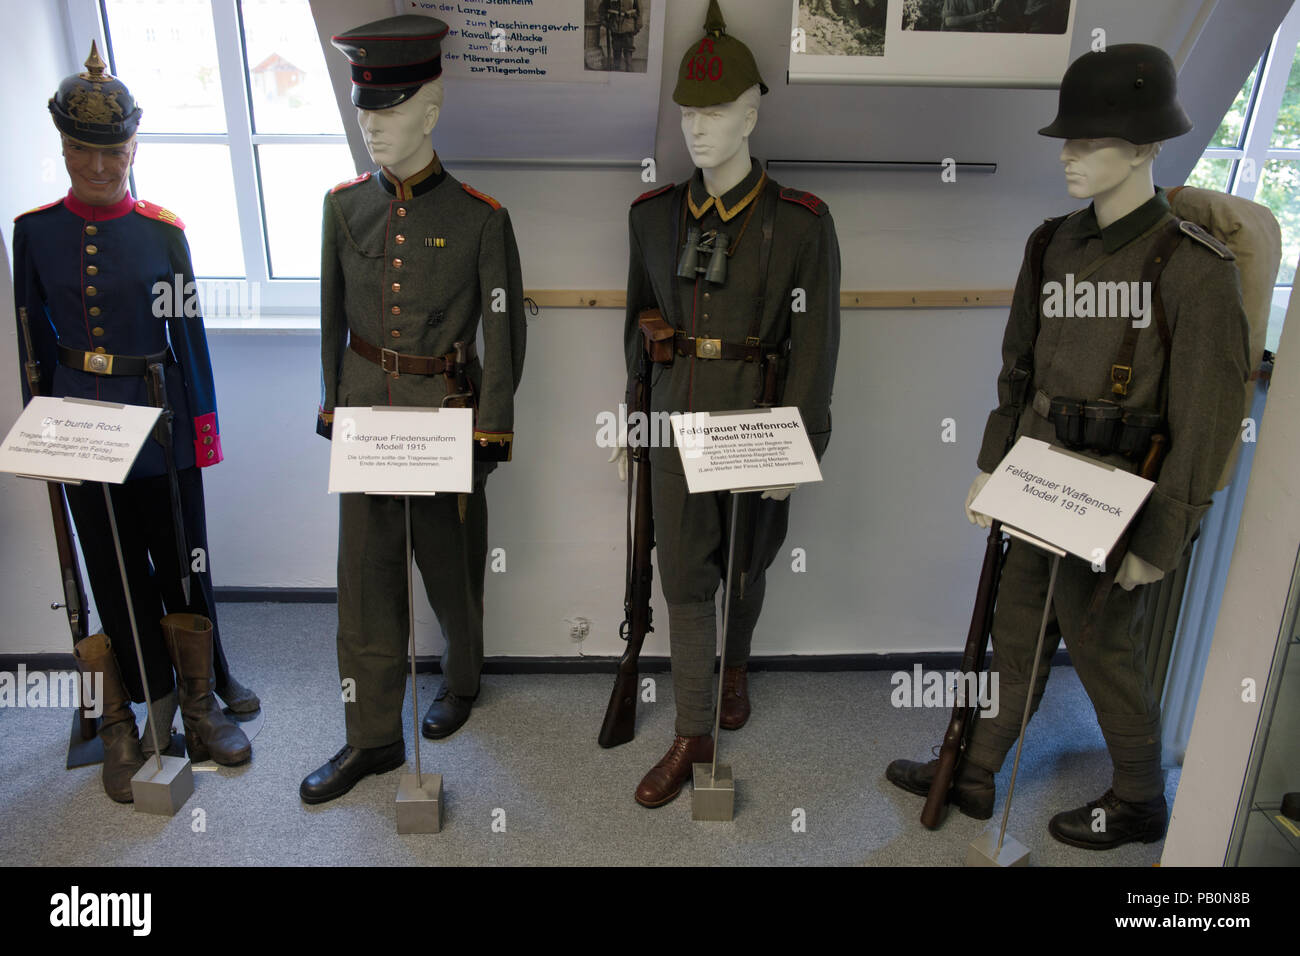 Military History Museum, Engstingen-Haid, Baden-Württemberg, Germany - Stock Image